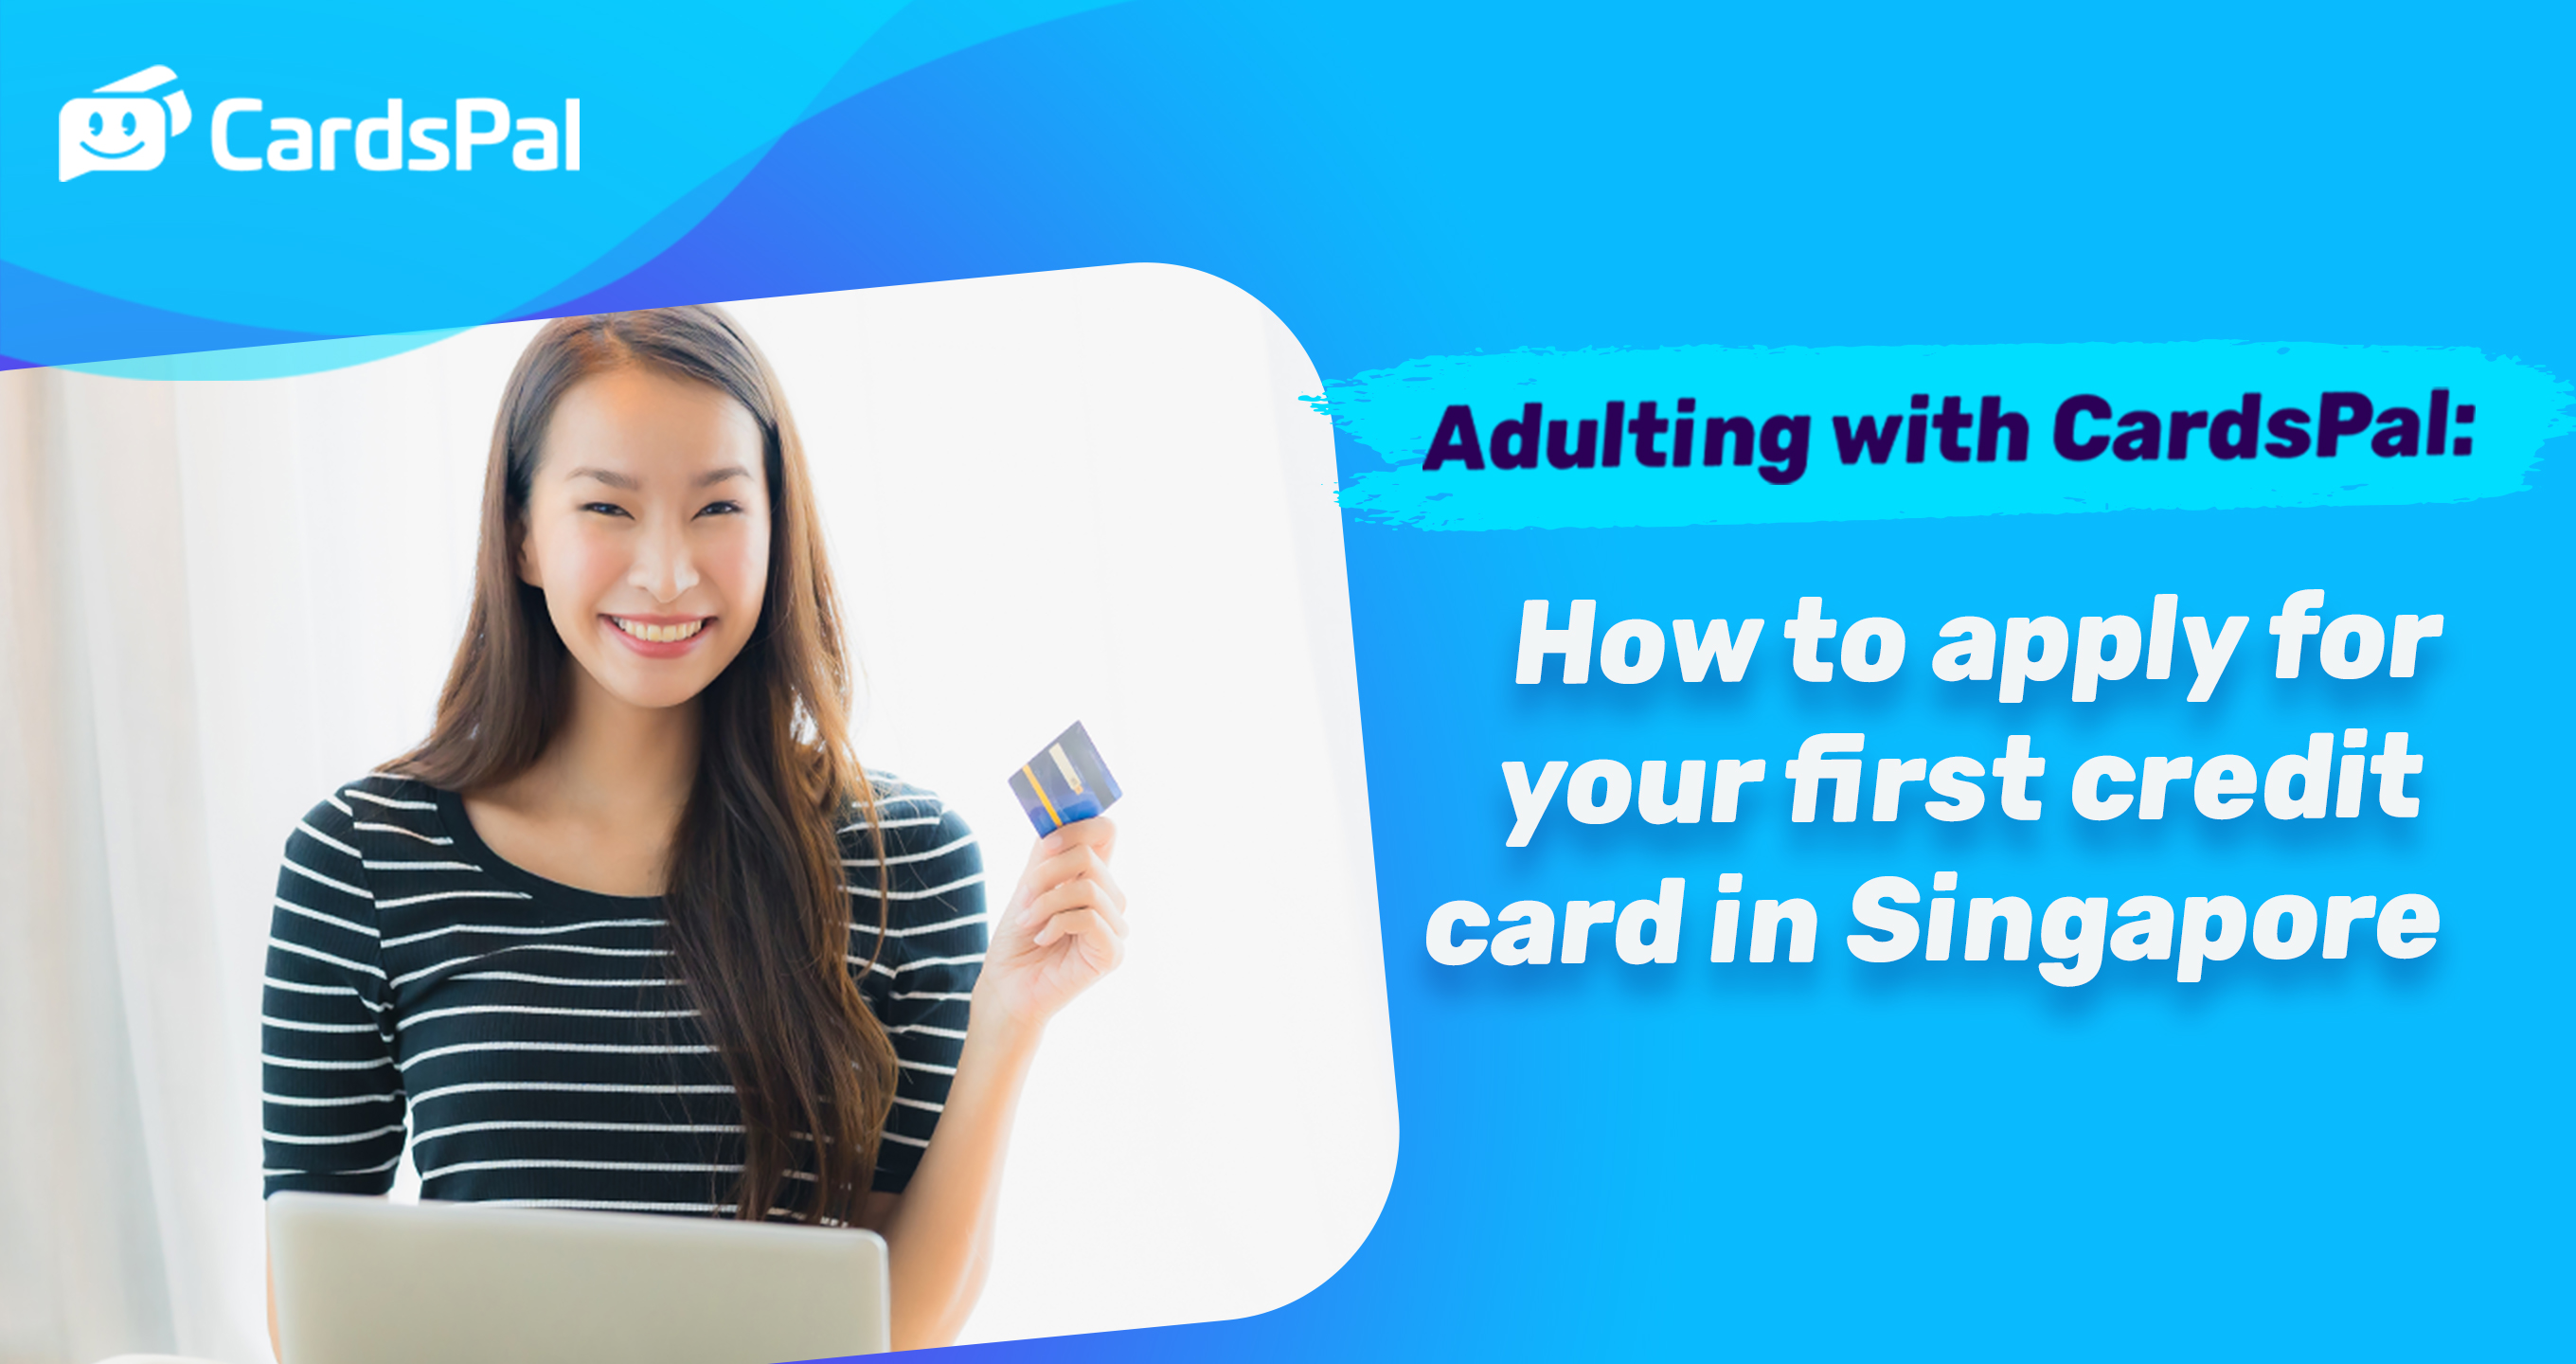 Adulting with CardsPal: How to apply for your first credit card in Singapore